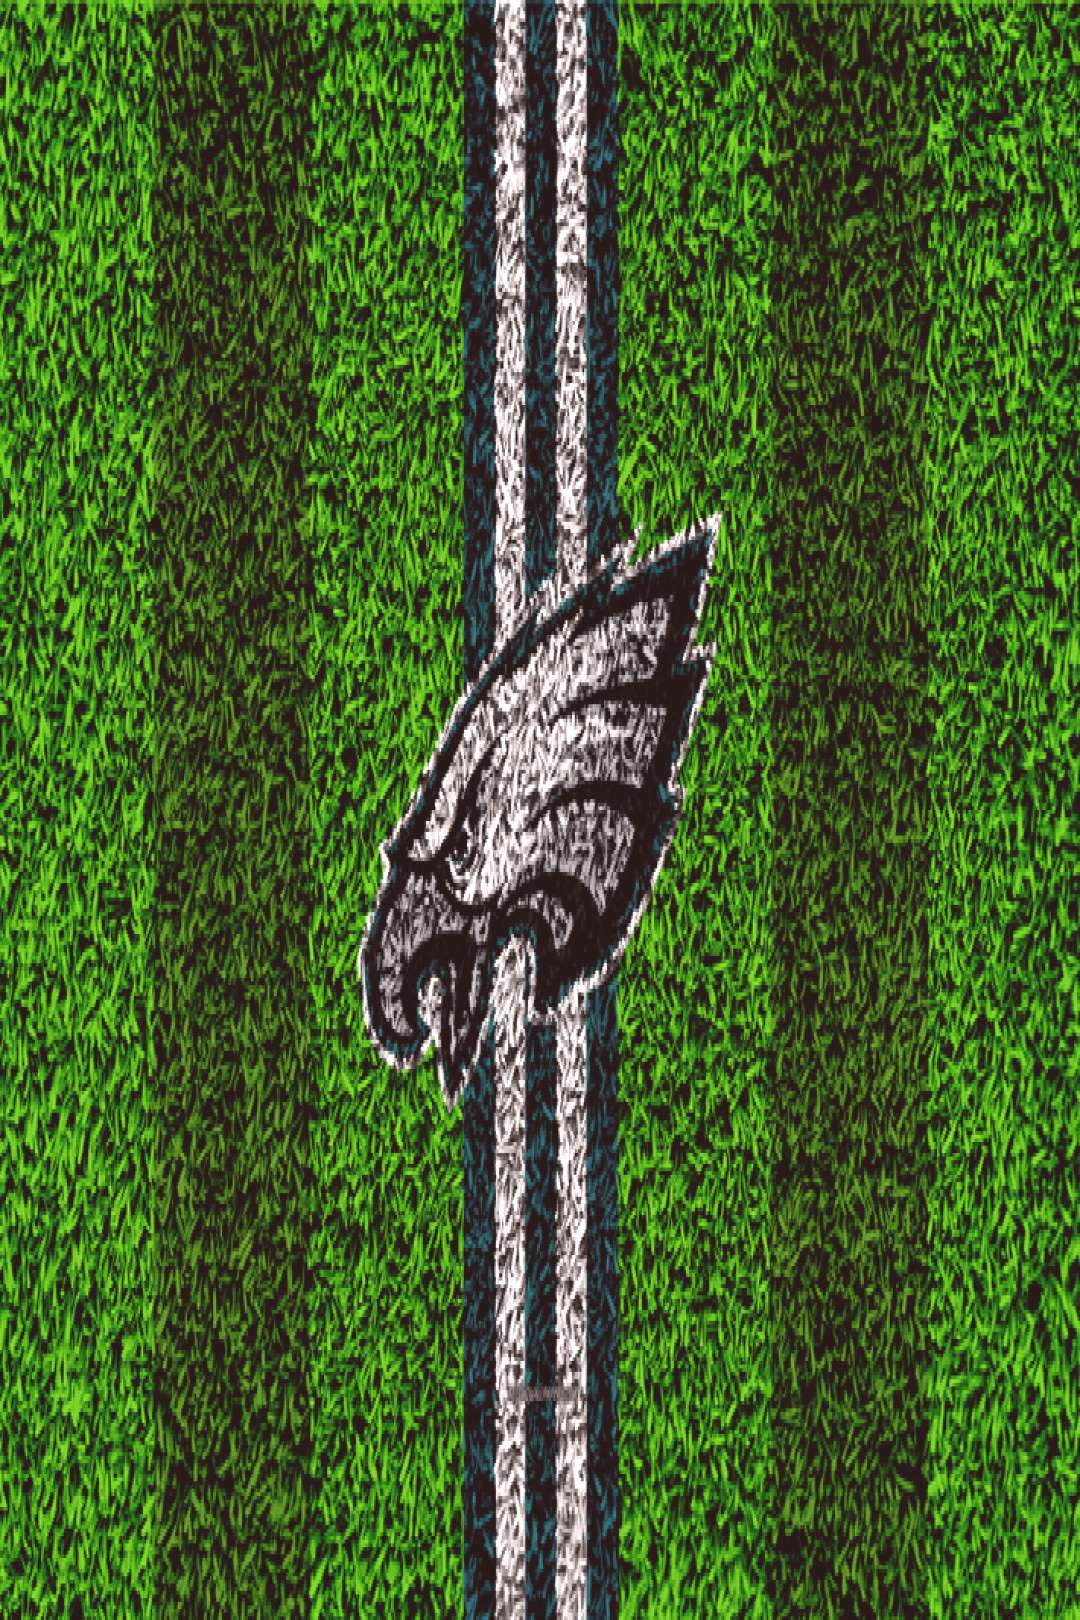 Download wallpapers Philadelphia Eagles, logo, 4k, grass texture, emblem, football lawn, green whit